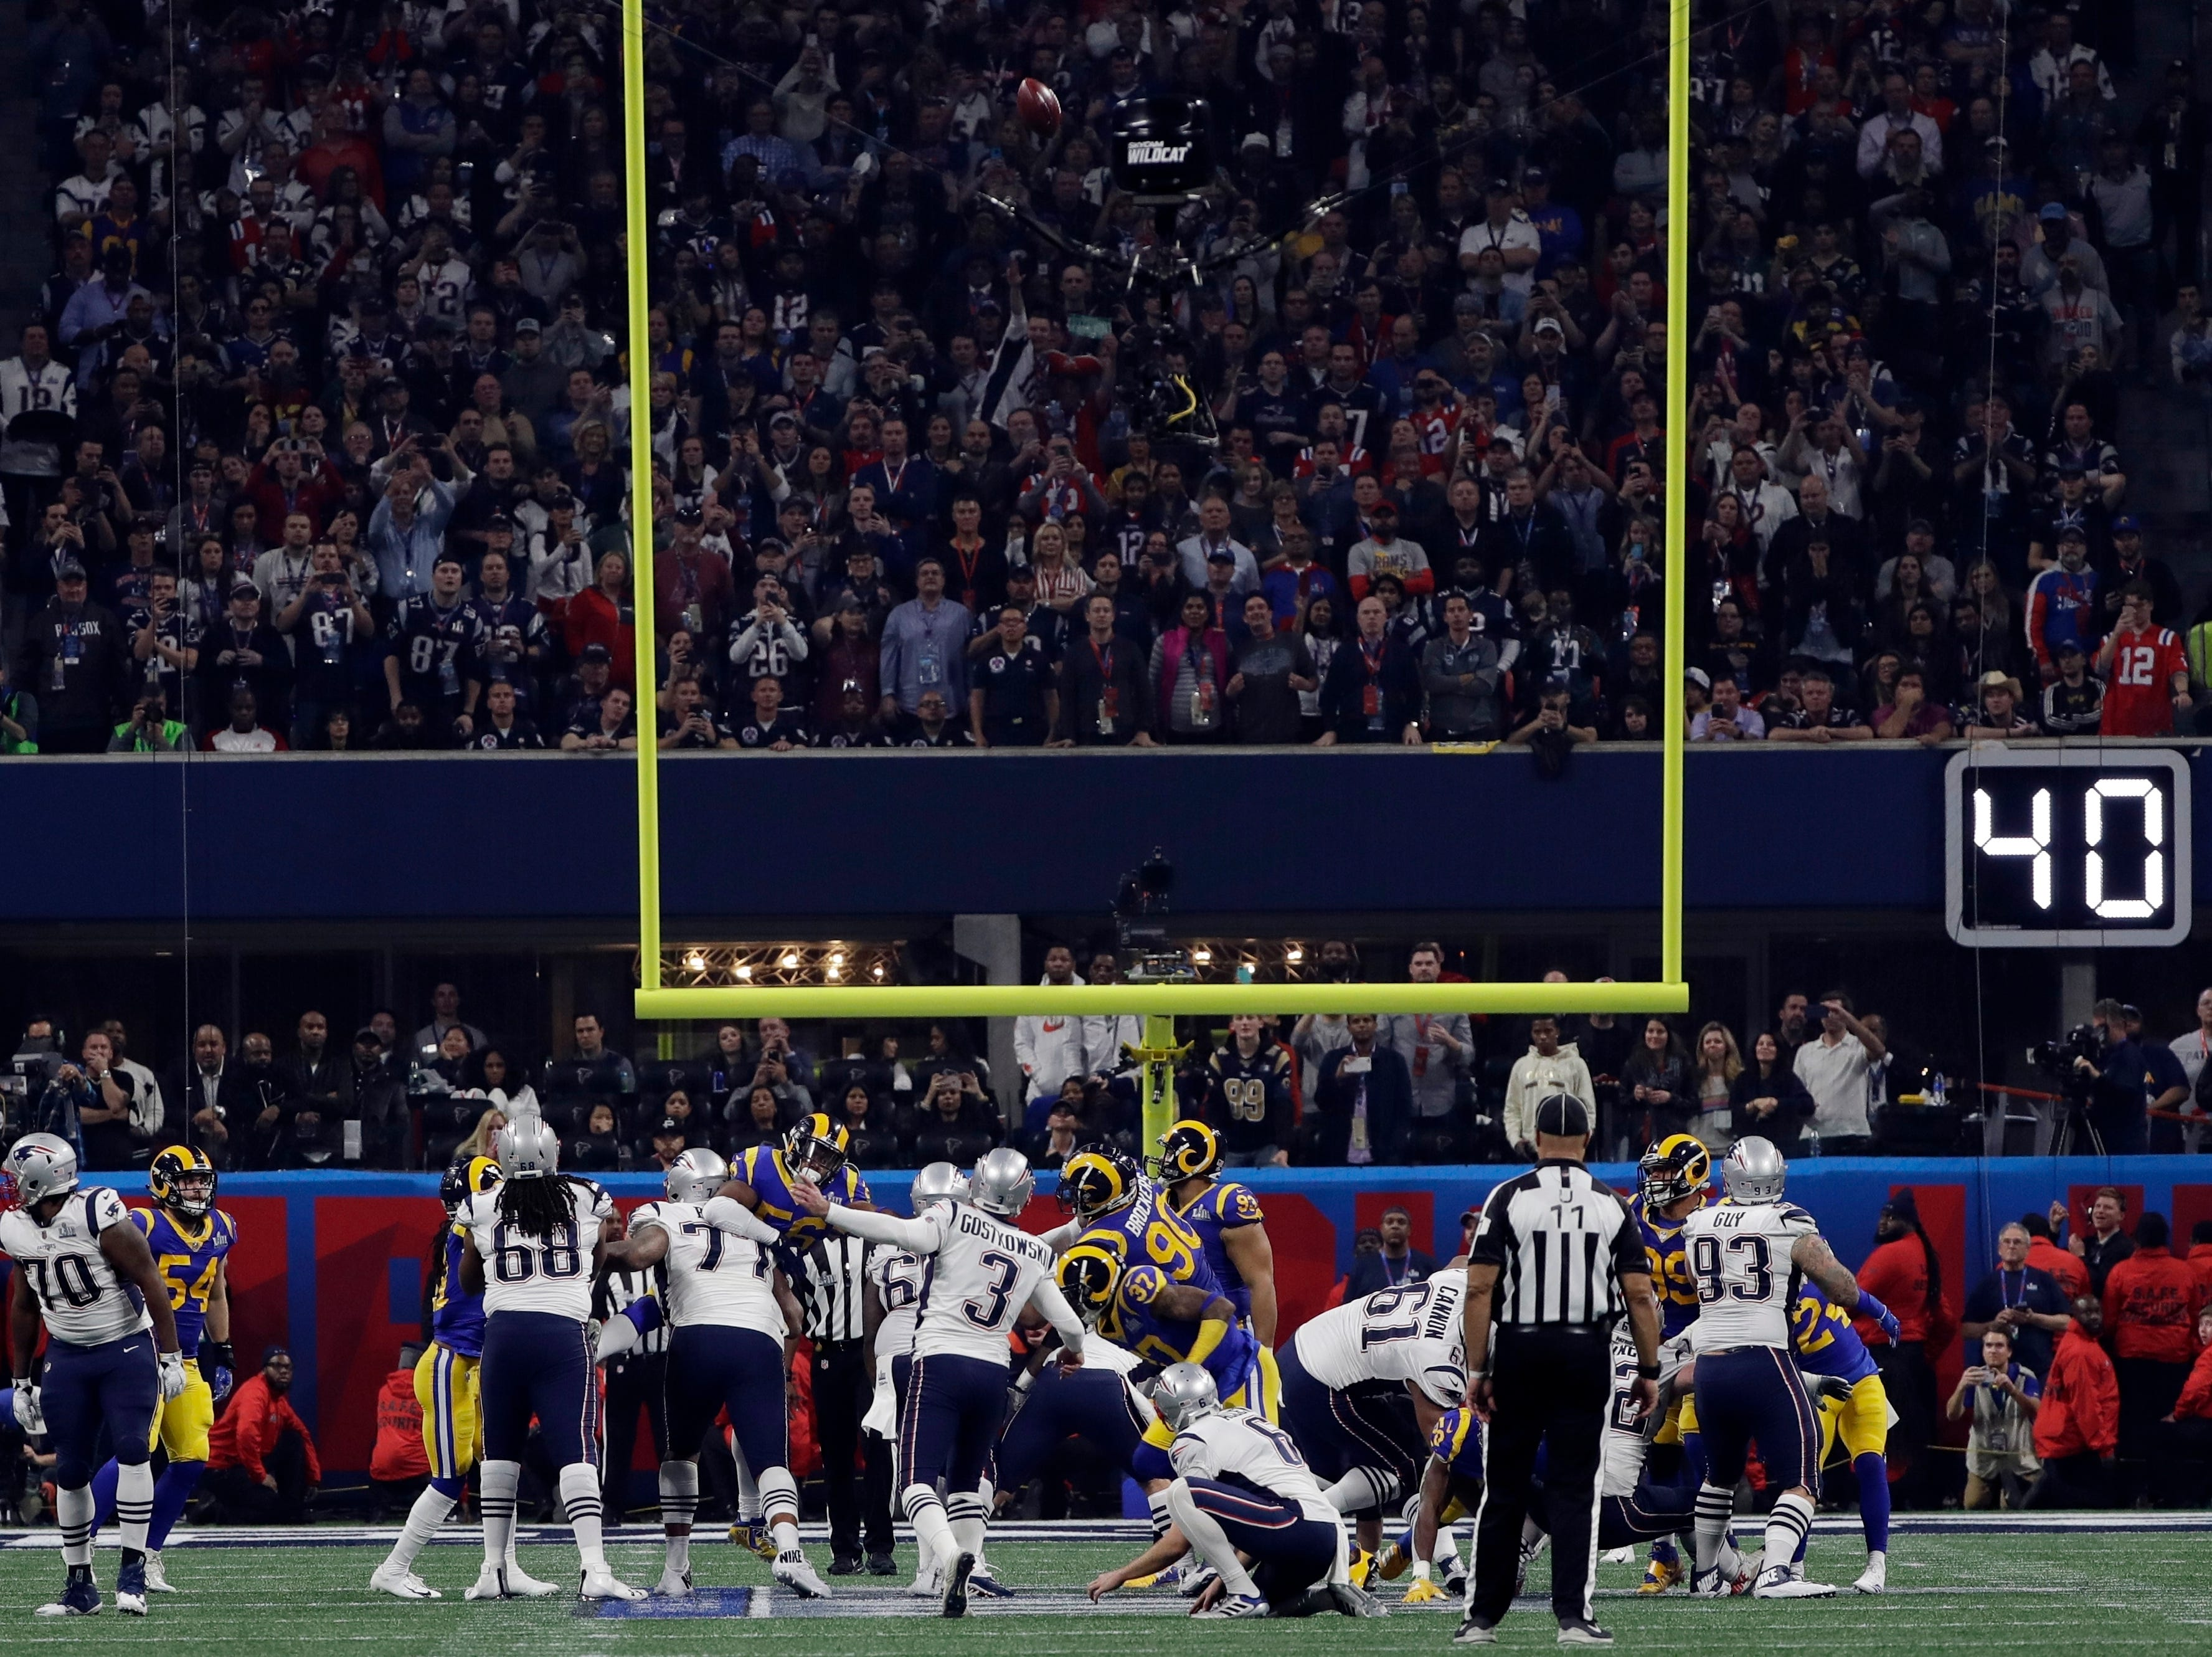 New England Patriots' Stephen Gostkowski (3) scores a field goal, during the second half.